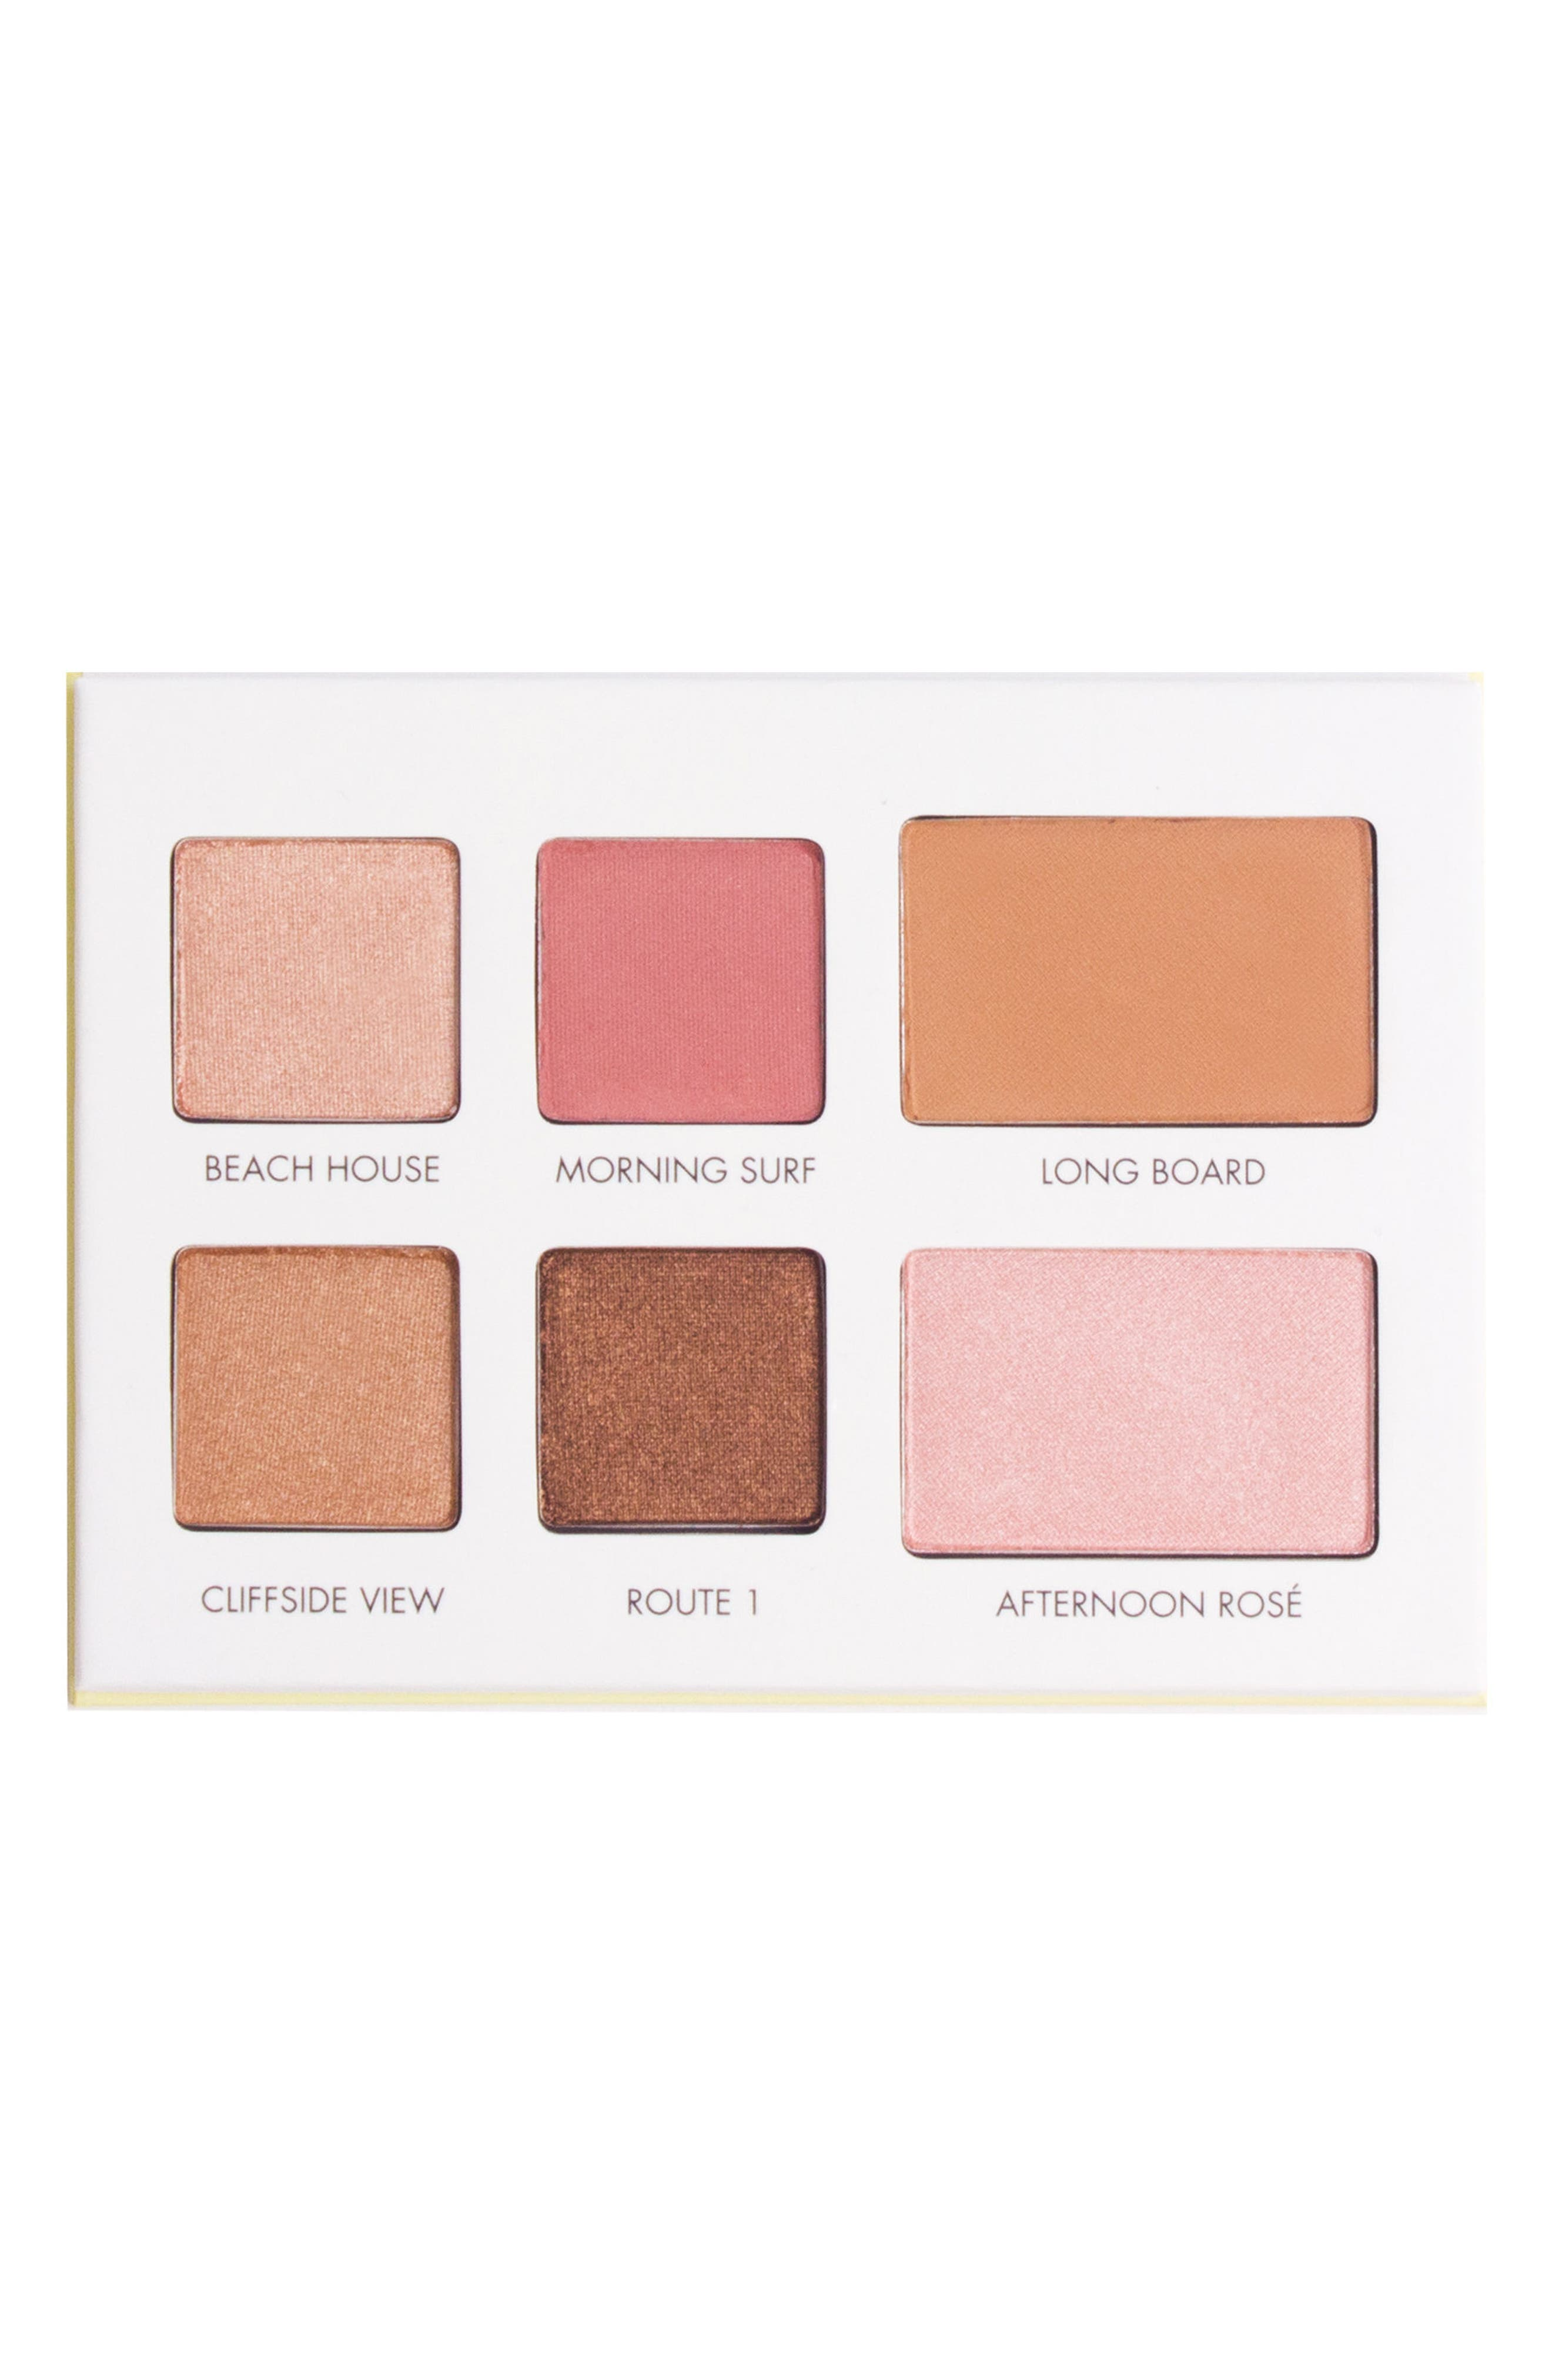 LORAC L.A. Experience Malibu Eye & Cheek Palette (Limited Edition)